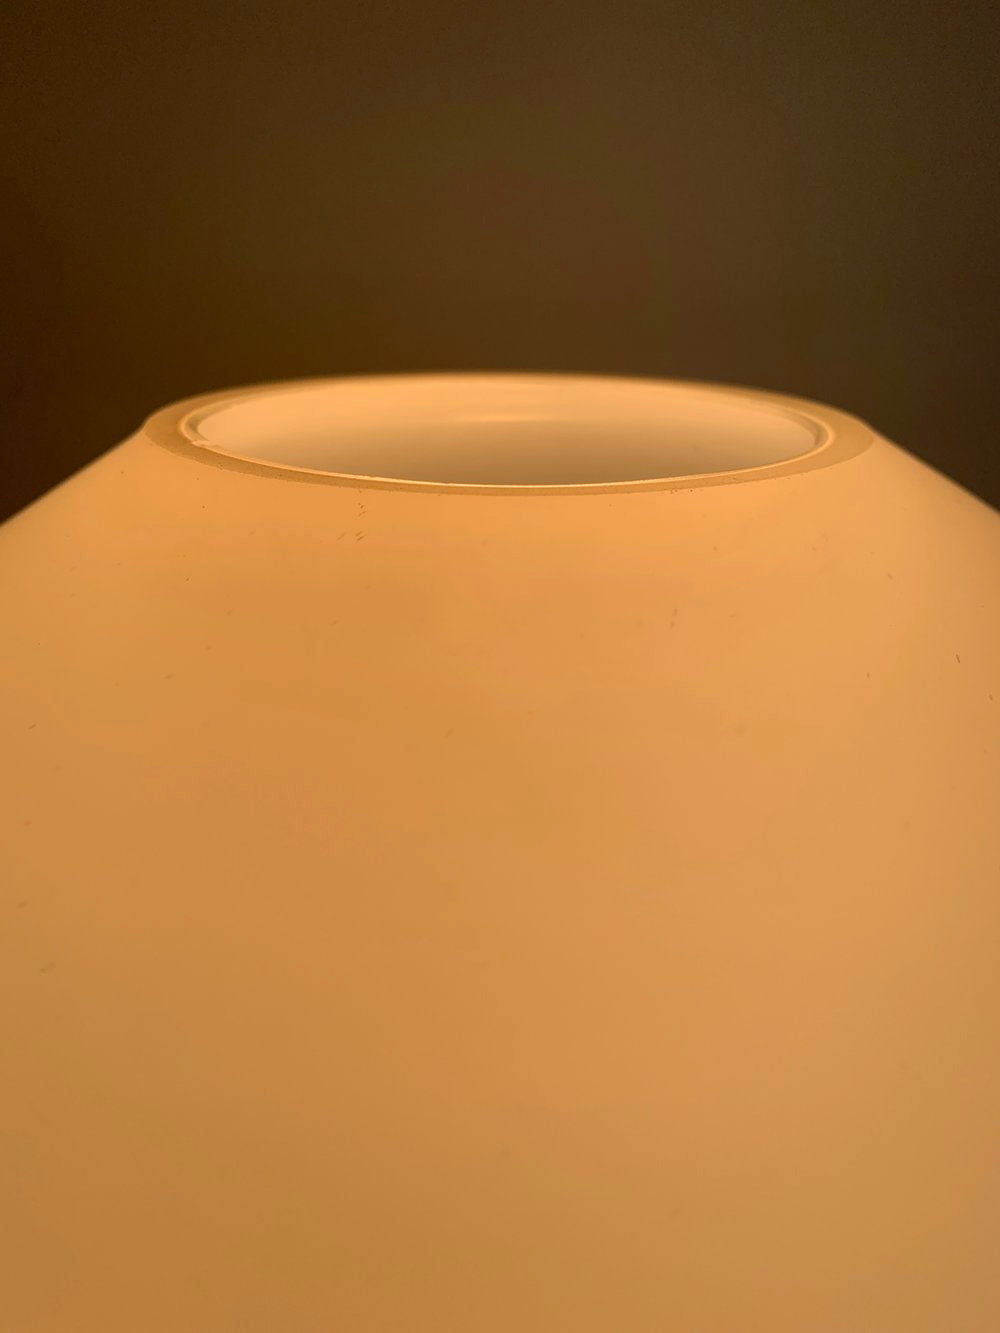 Mid Century Frosted Glass Lamp by Lisa Johansson-Pape